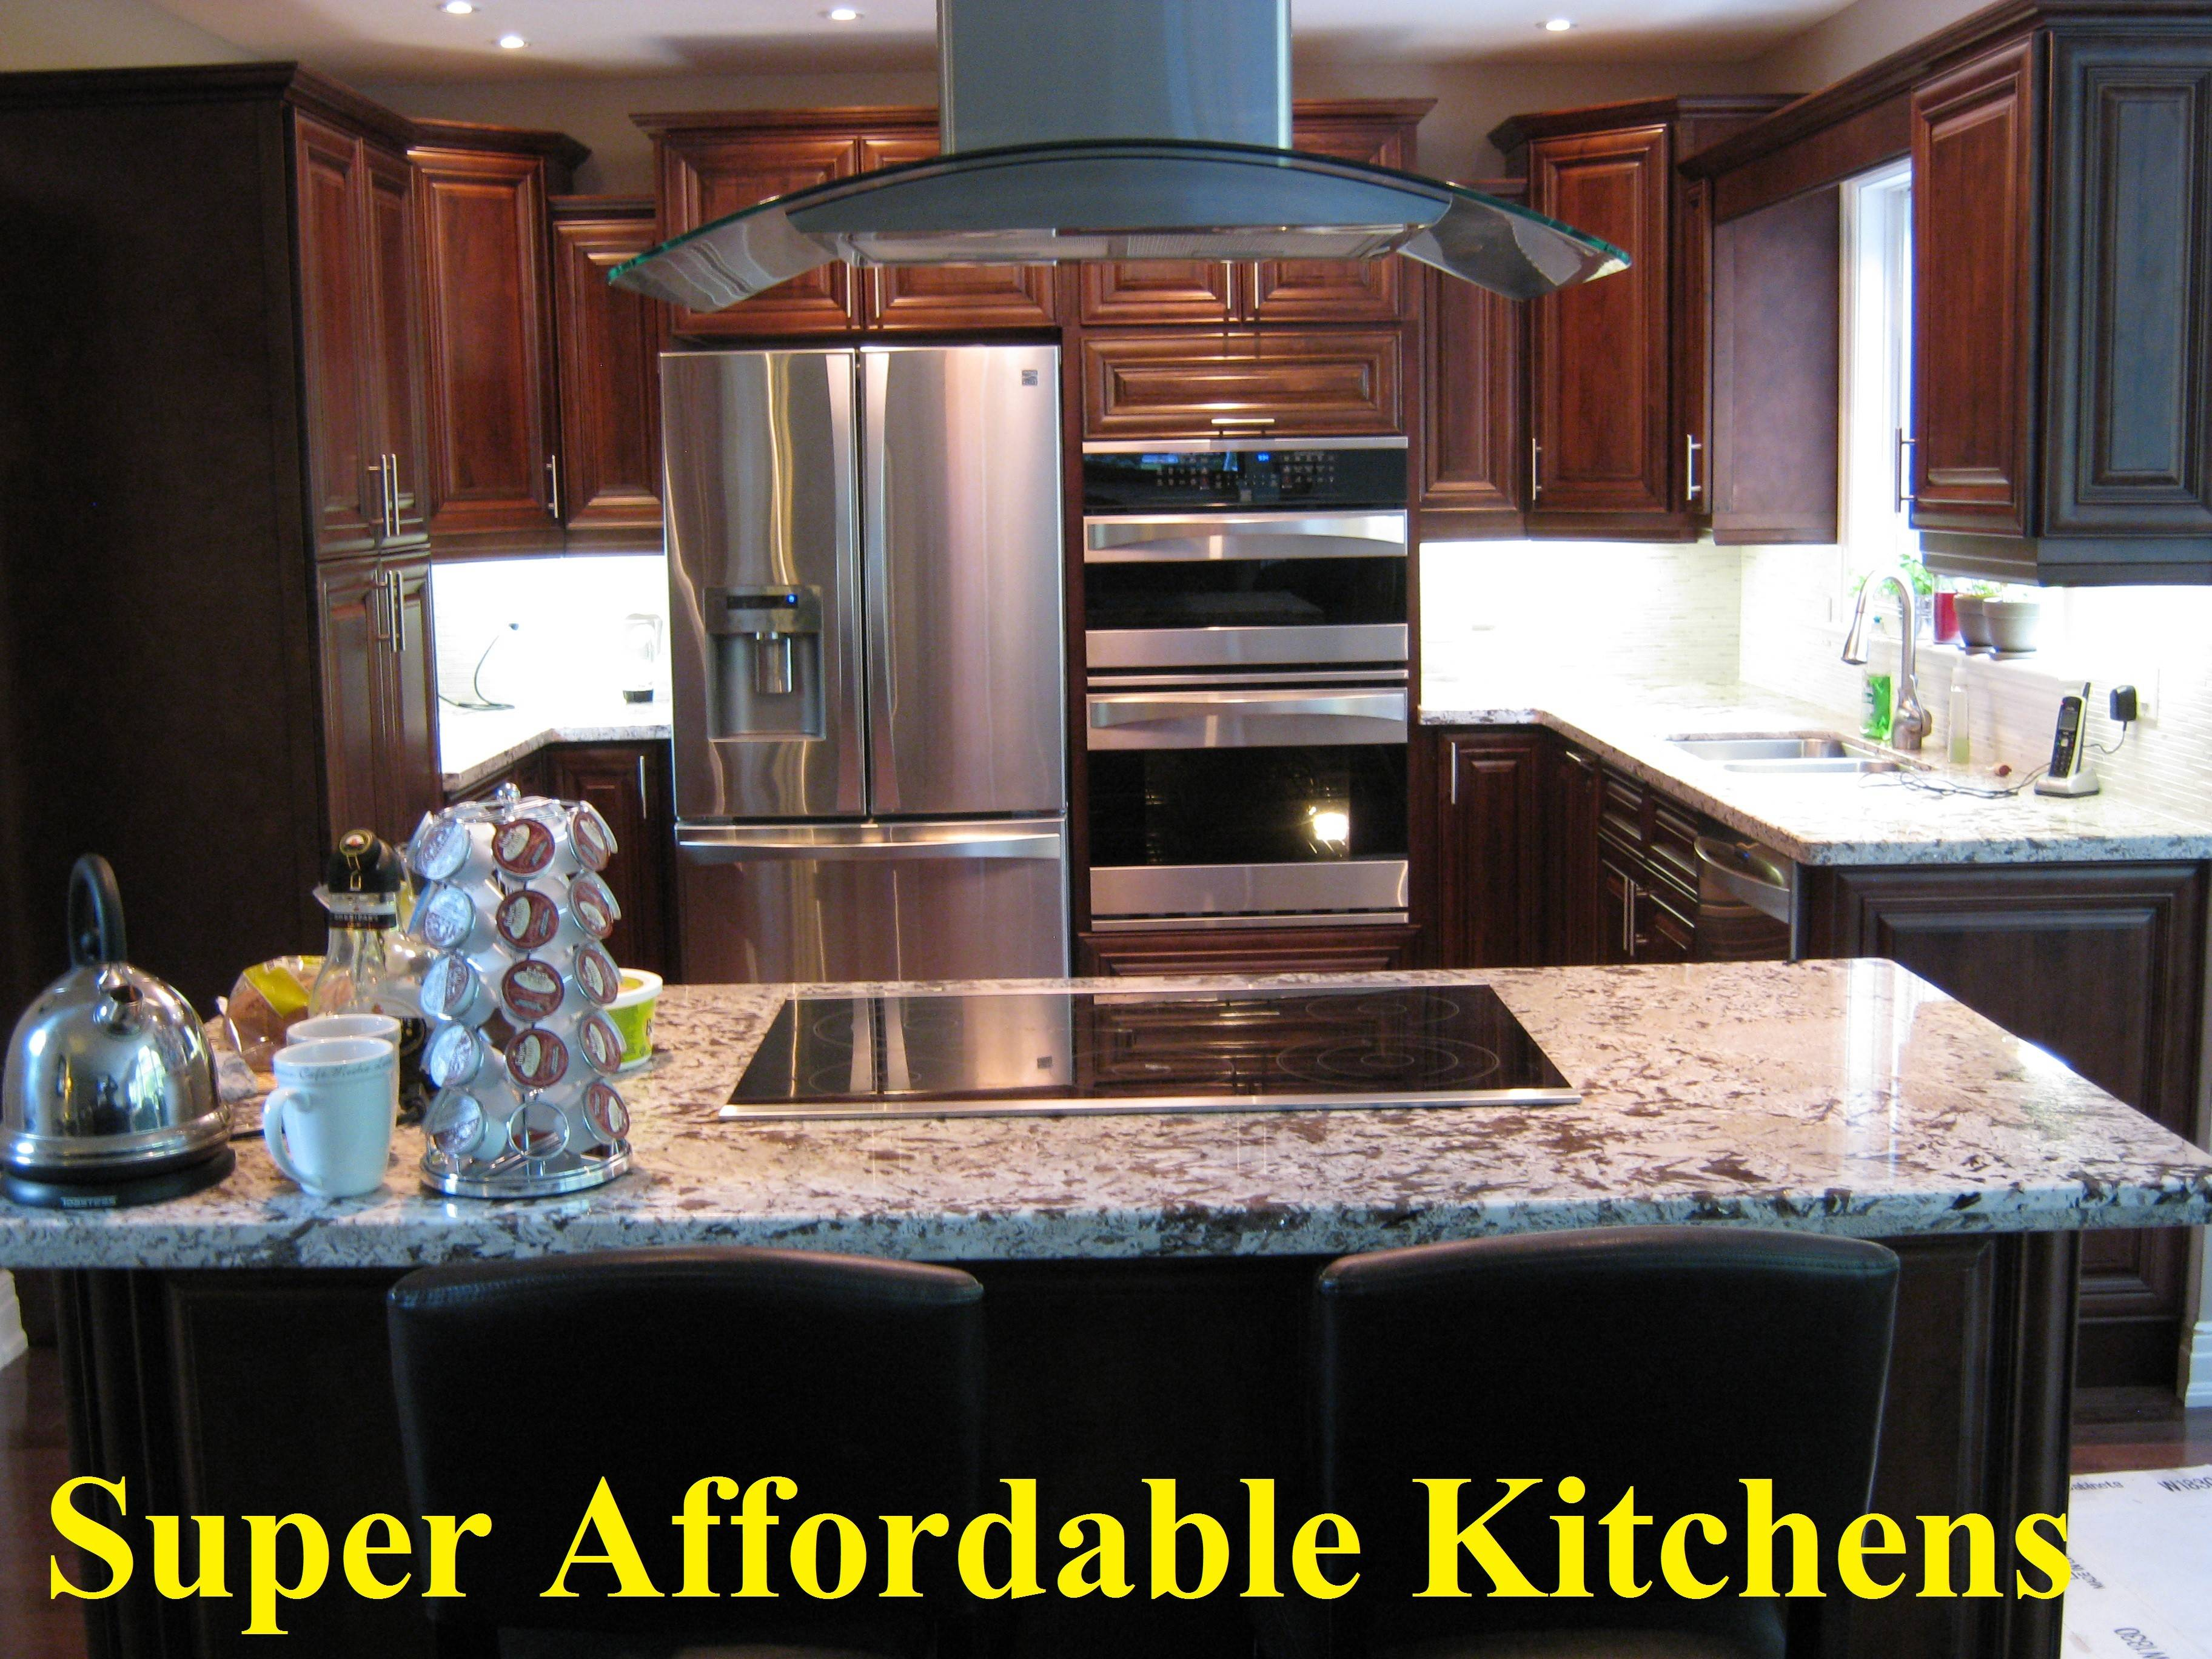 Cabinet Super Affordable Kitchens